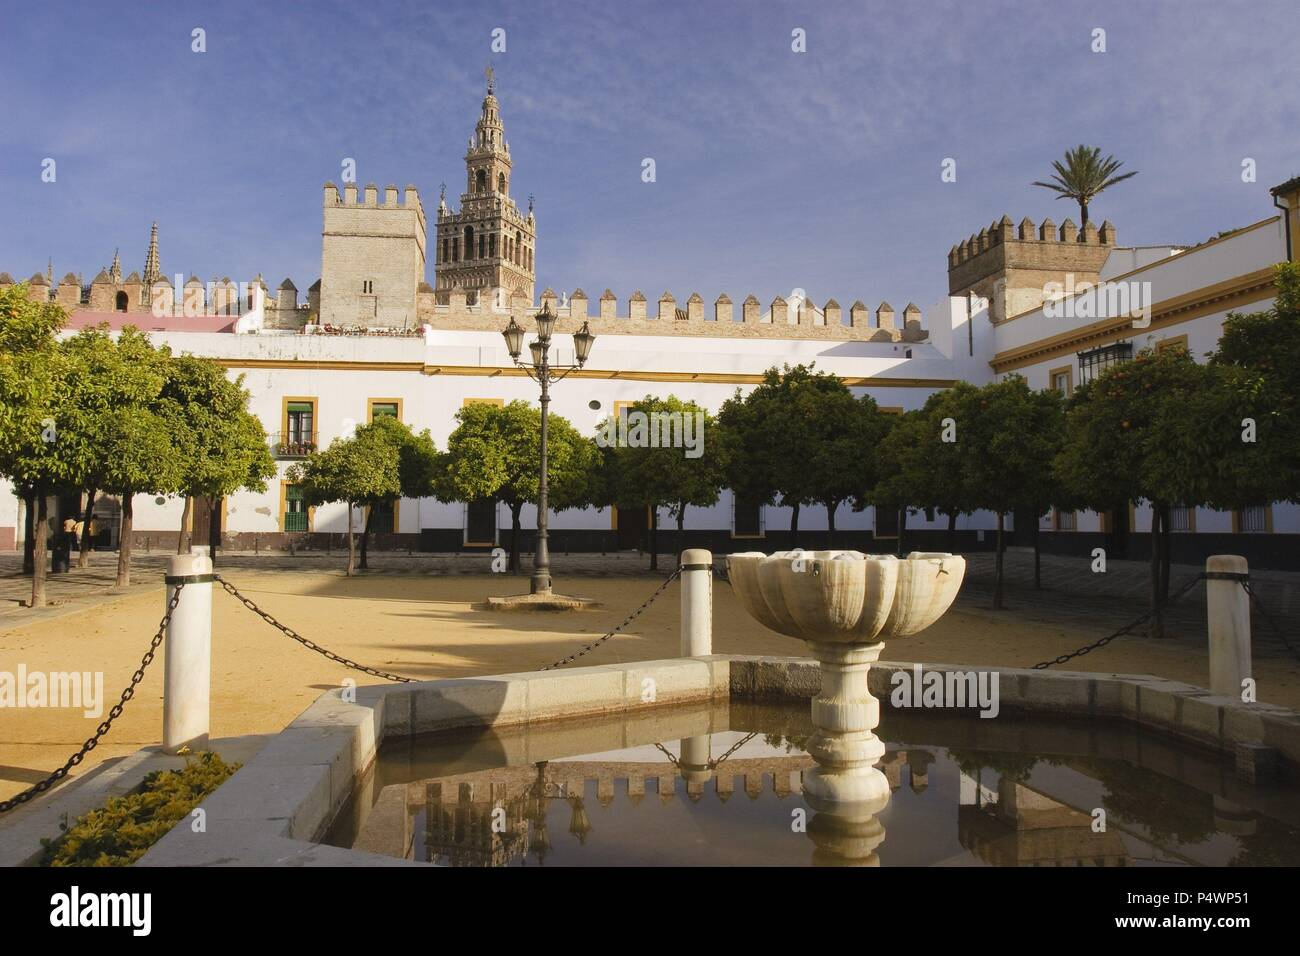 Patio De Las Banderas Santa Cruz Quarter Sevilla City Andalusia